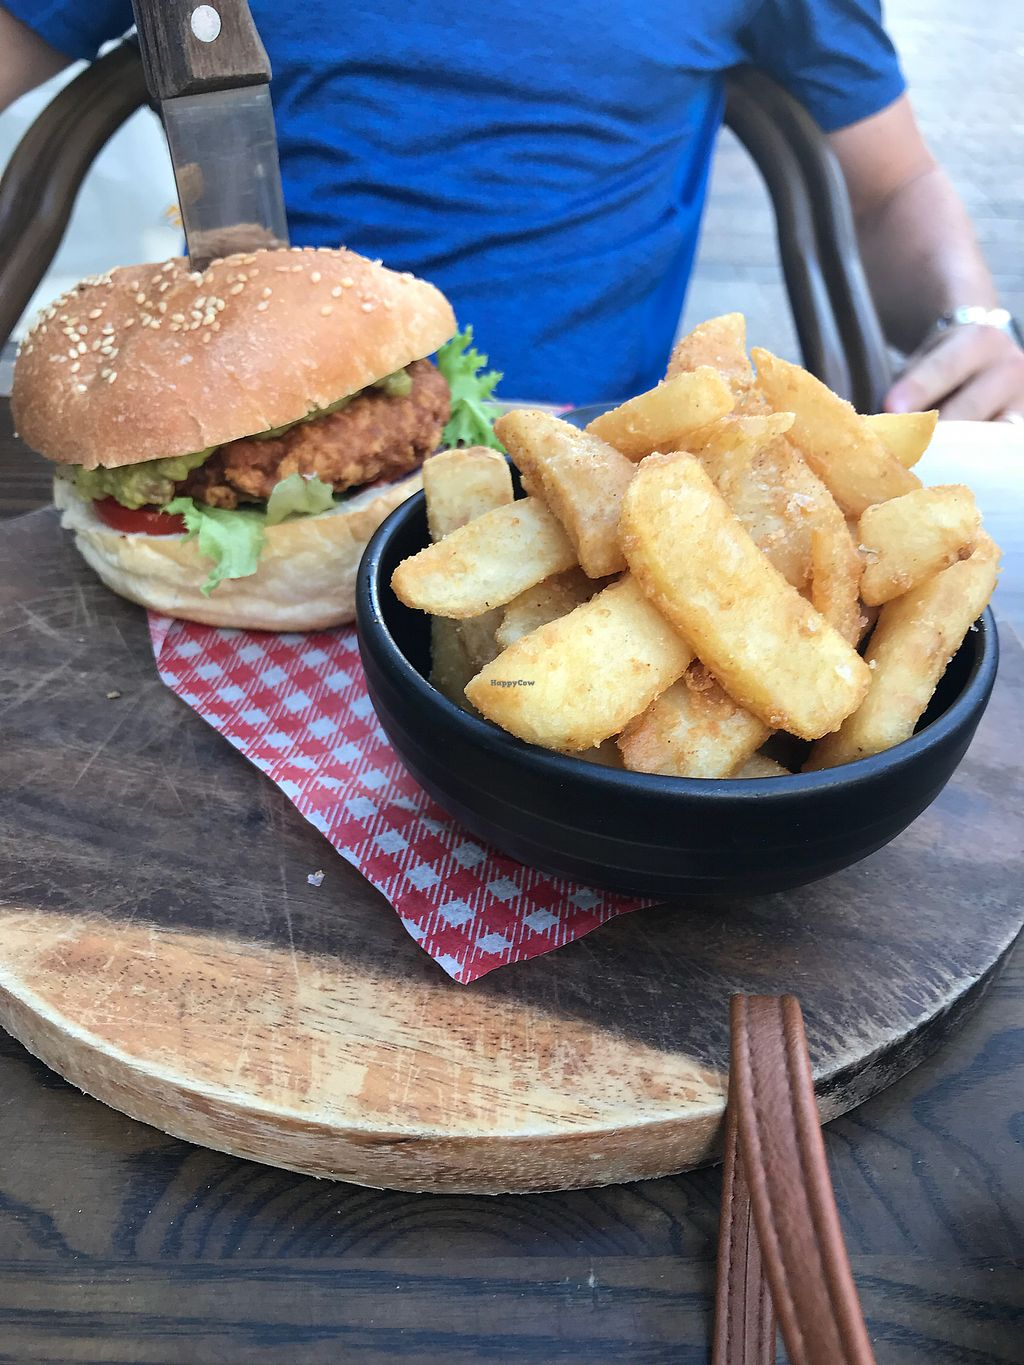 """Photo of The Hold  by <a href=""""/members/profile/dazedkiwi"""">dazedkiwi</a> <br/>Southern fried chicken burger <br/> April 14, 2018  - <a href='/contact/abuse/image/76715/385610'>Report</a>"""